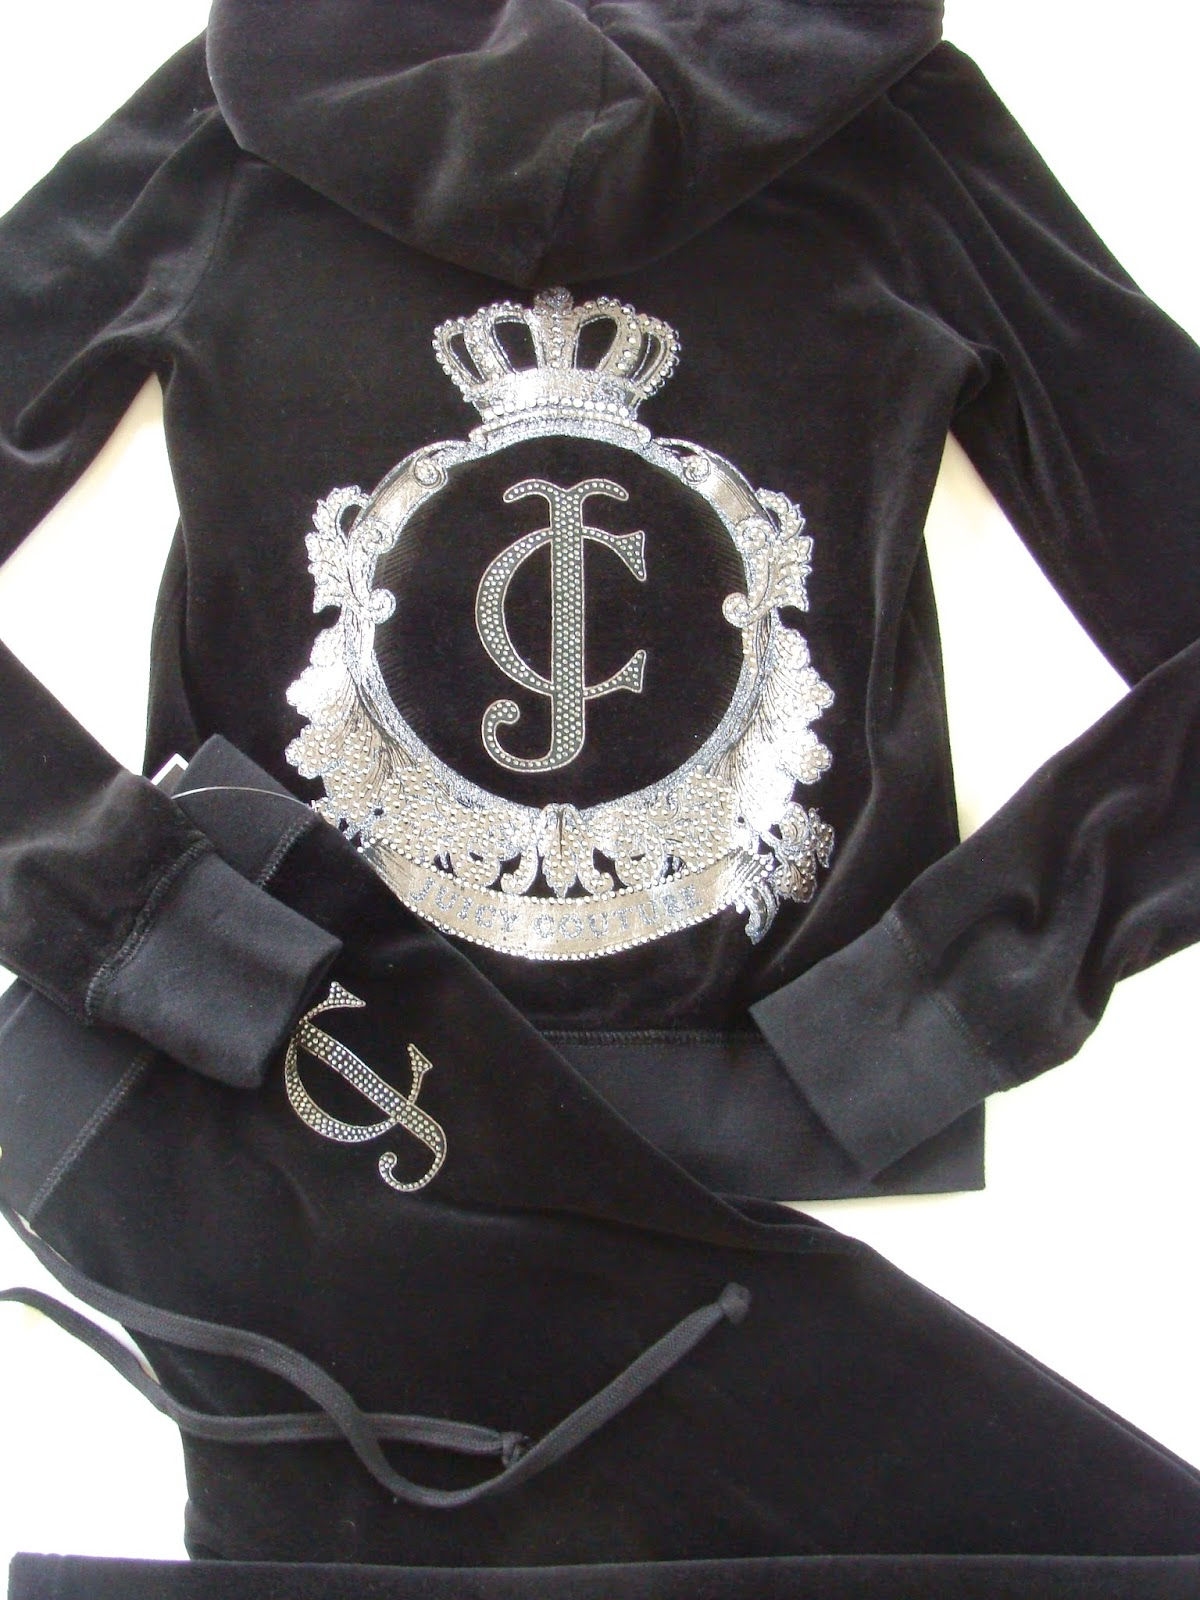 http://www.sunnybeachcouture.com/search.php?search_query=juicy+couture+